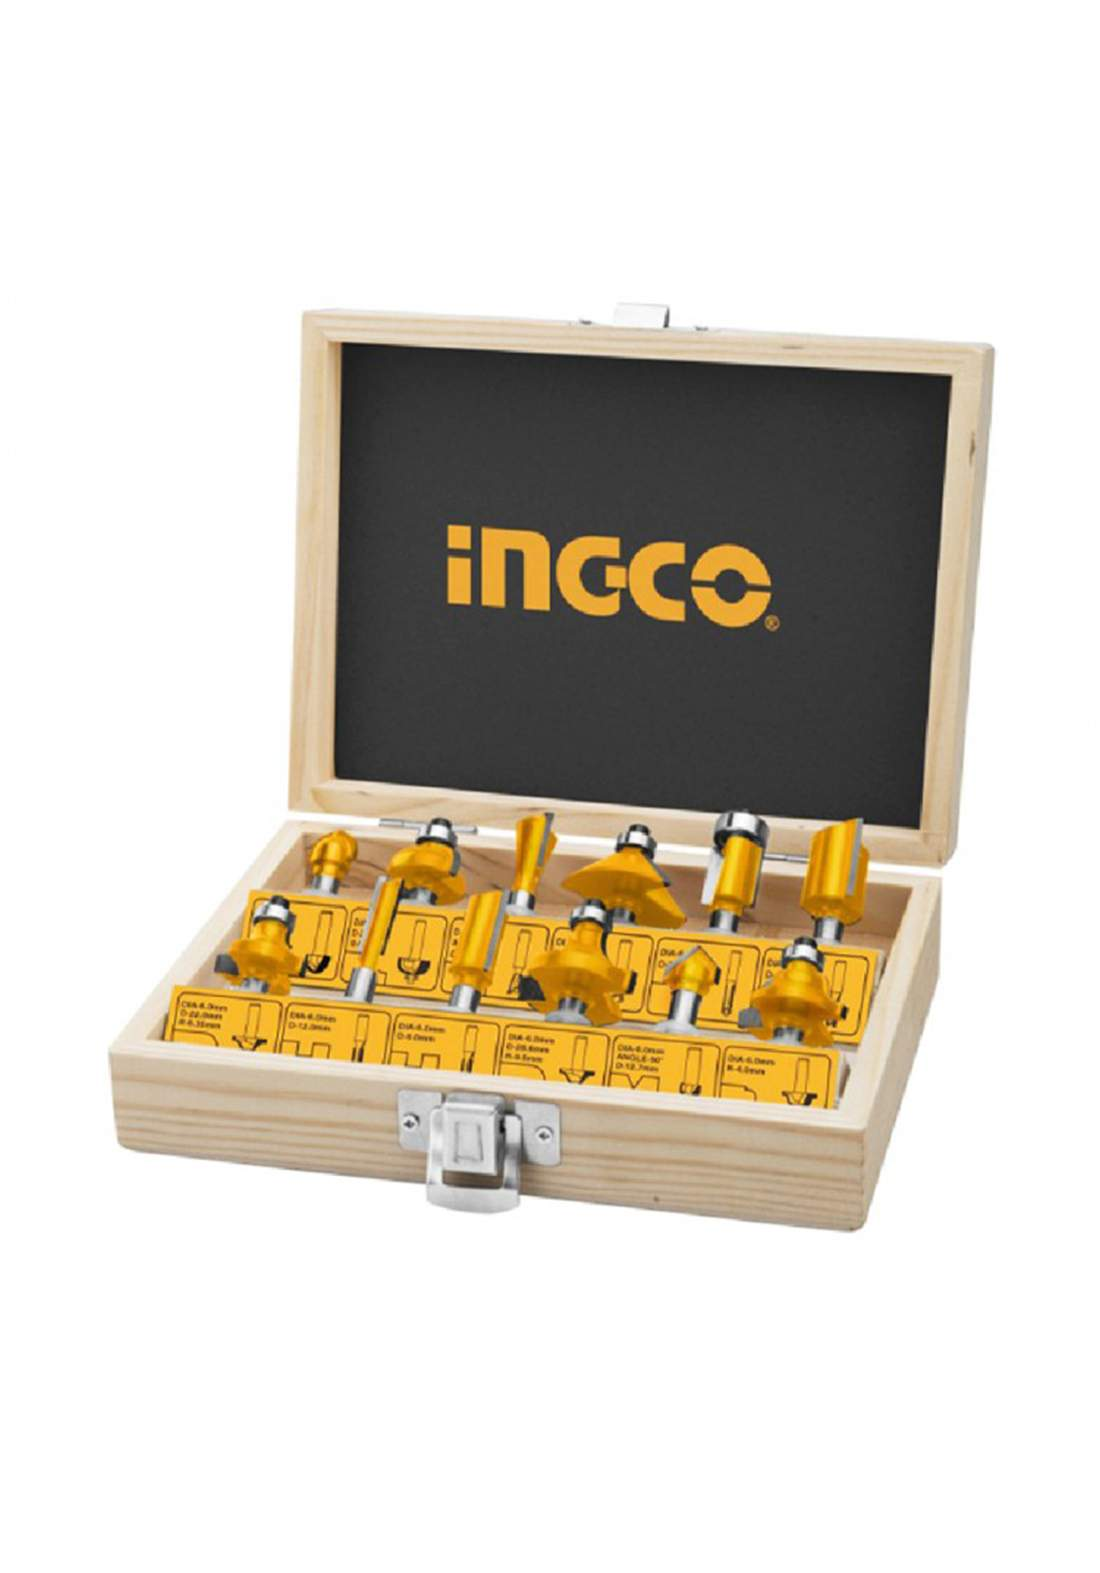 Ingco 12 pieces Router Bits 6mm - AKRT1201 سيت فريزة